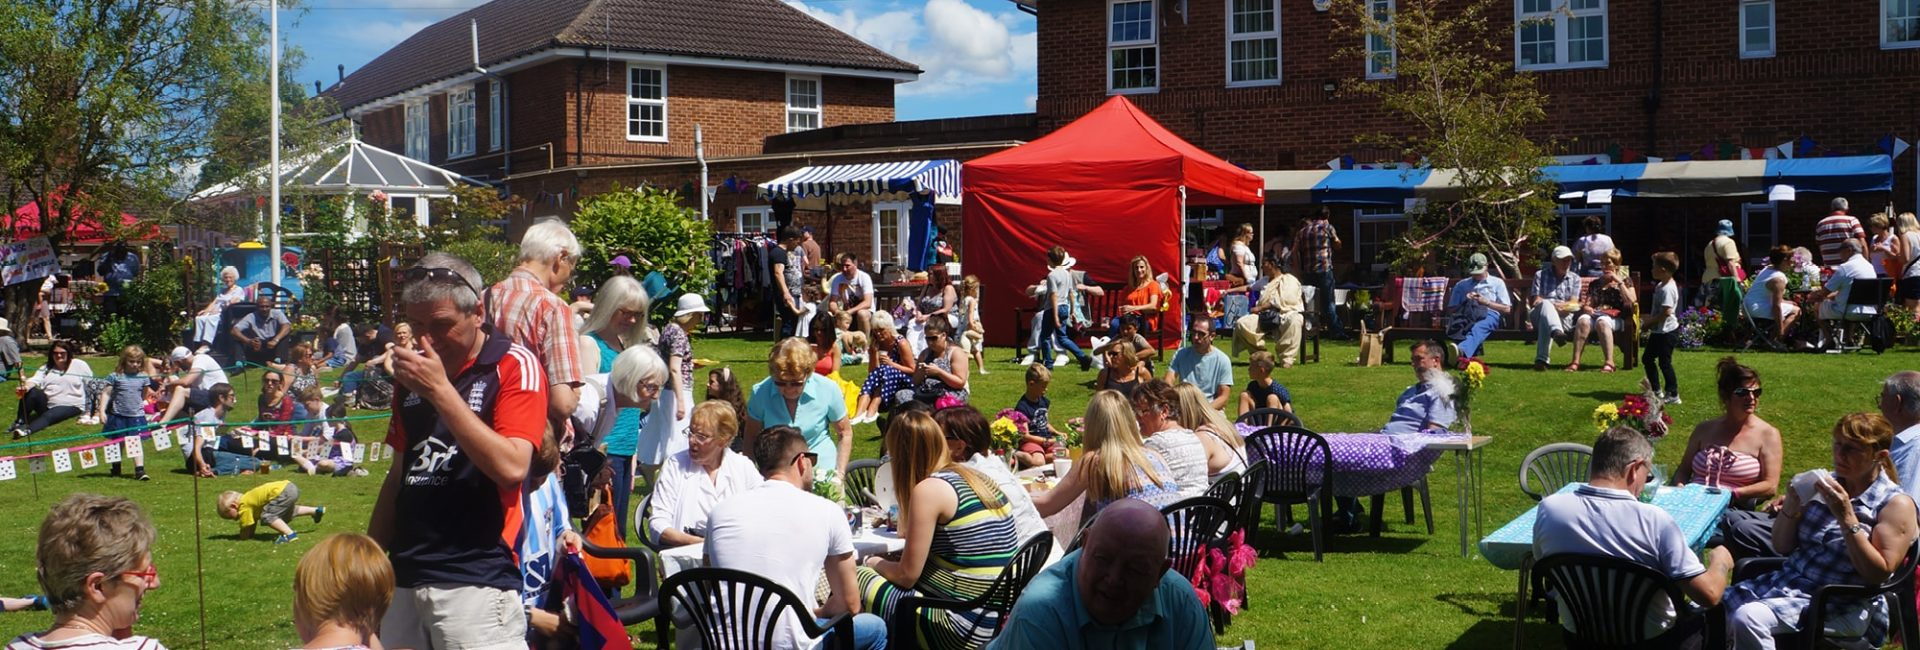 The Myton Hospices Summer Fete and Community Afternoon - Warwick Coventry Rugby Leamington Spa Hospice